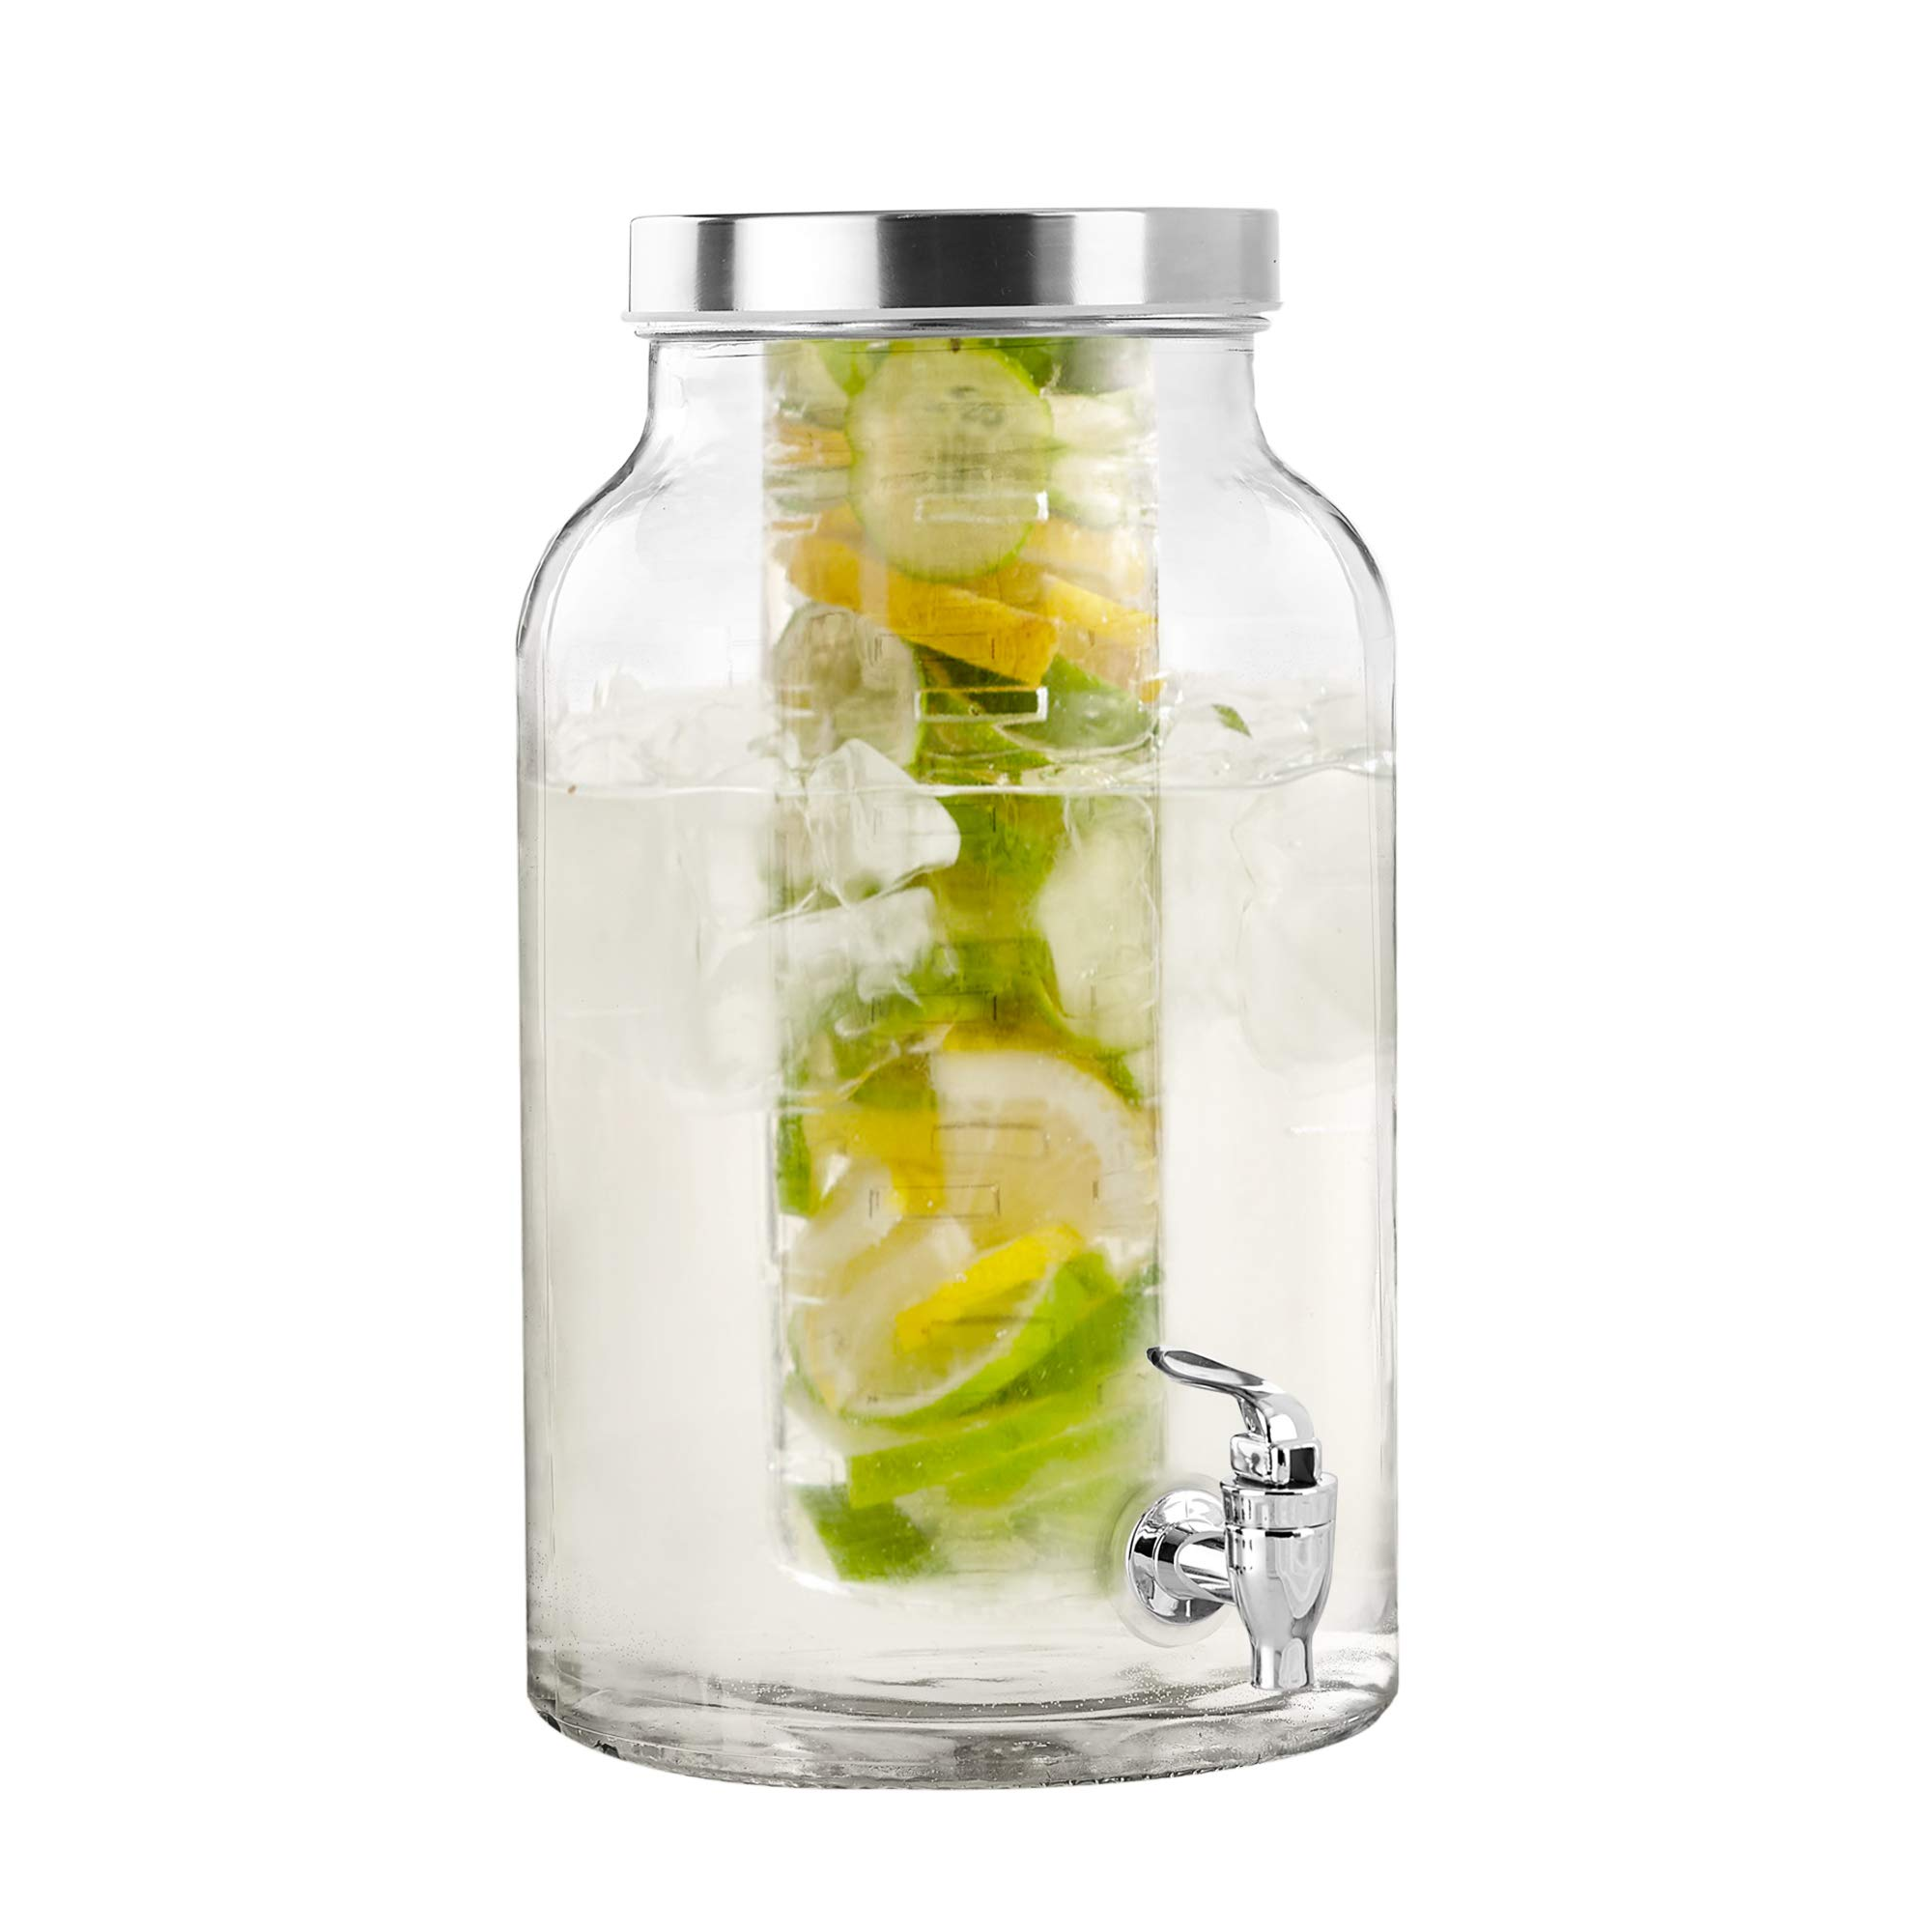 Style Setter 210437-GBS Fruit Infuser Glass Beverage Dispenser with Metal Lid, 8.5x13.5, Clear